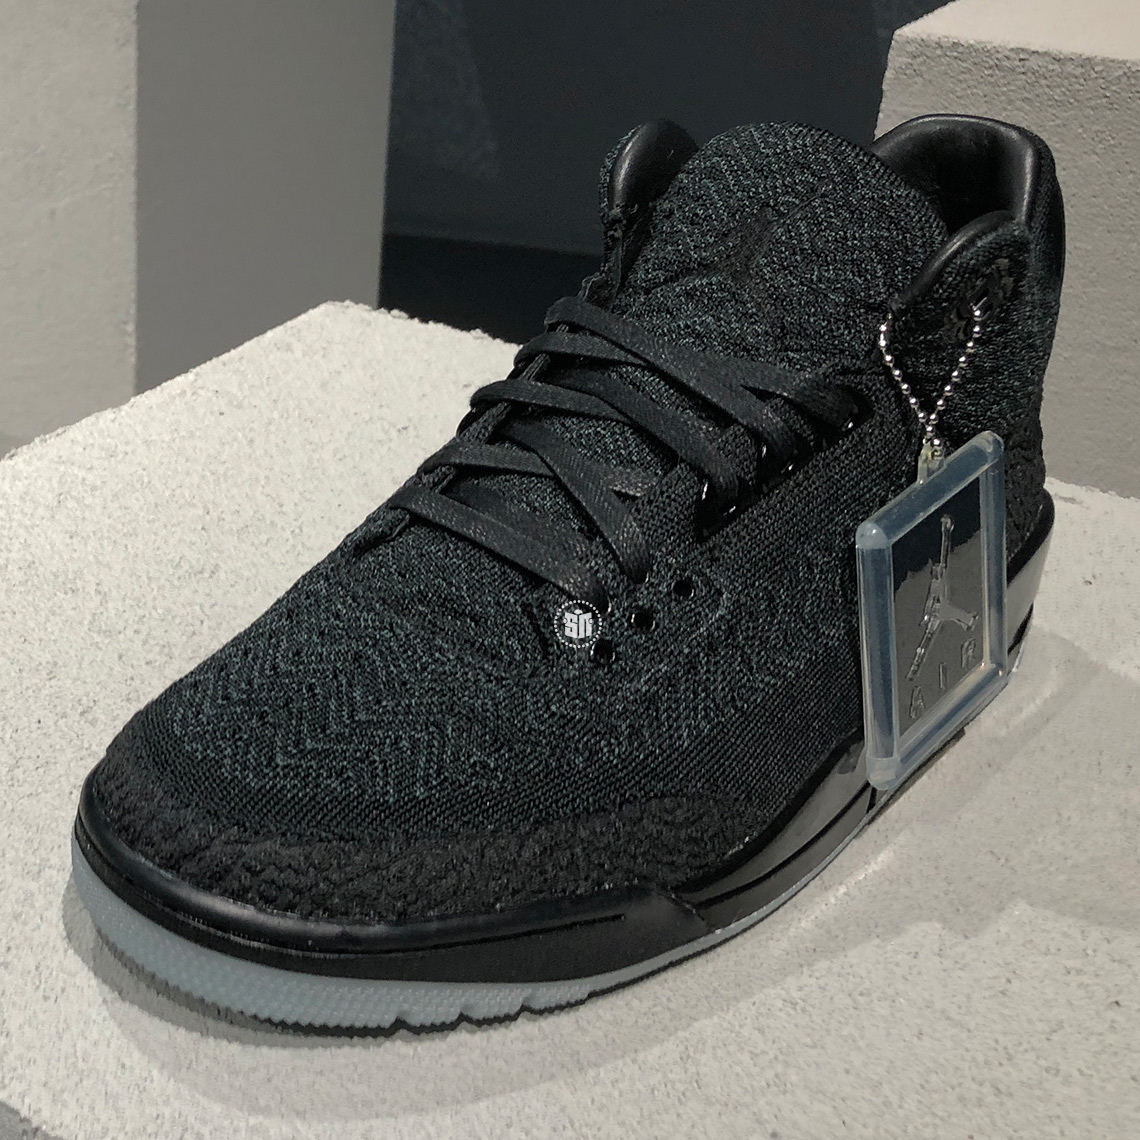 036a4c3084e949 Air Jordan 3 Flyknit - First Look